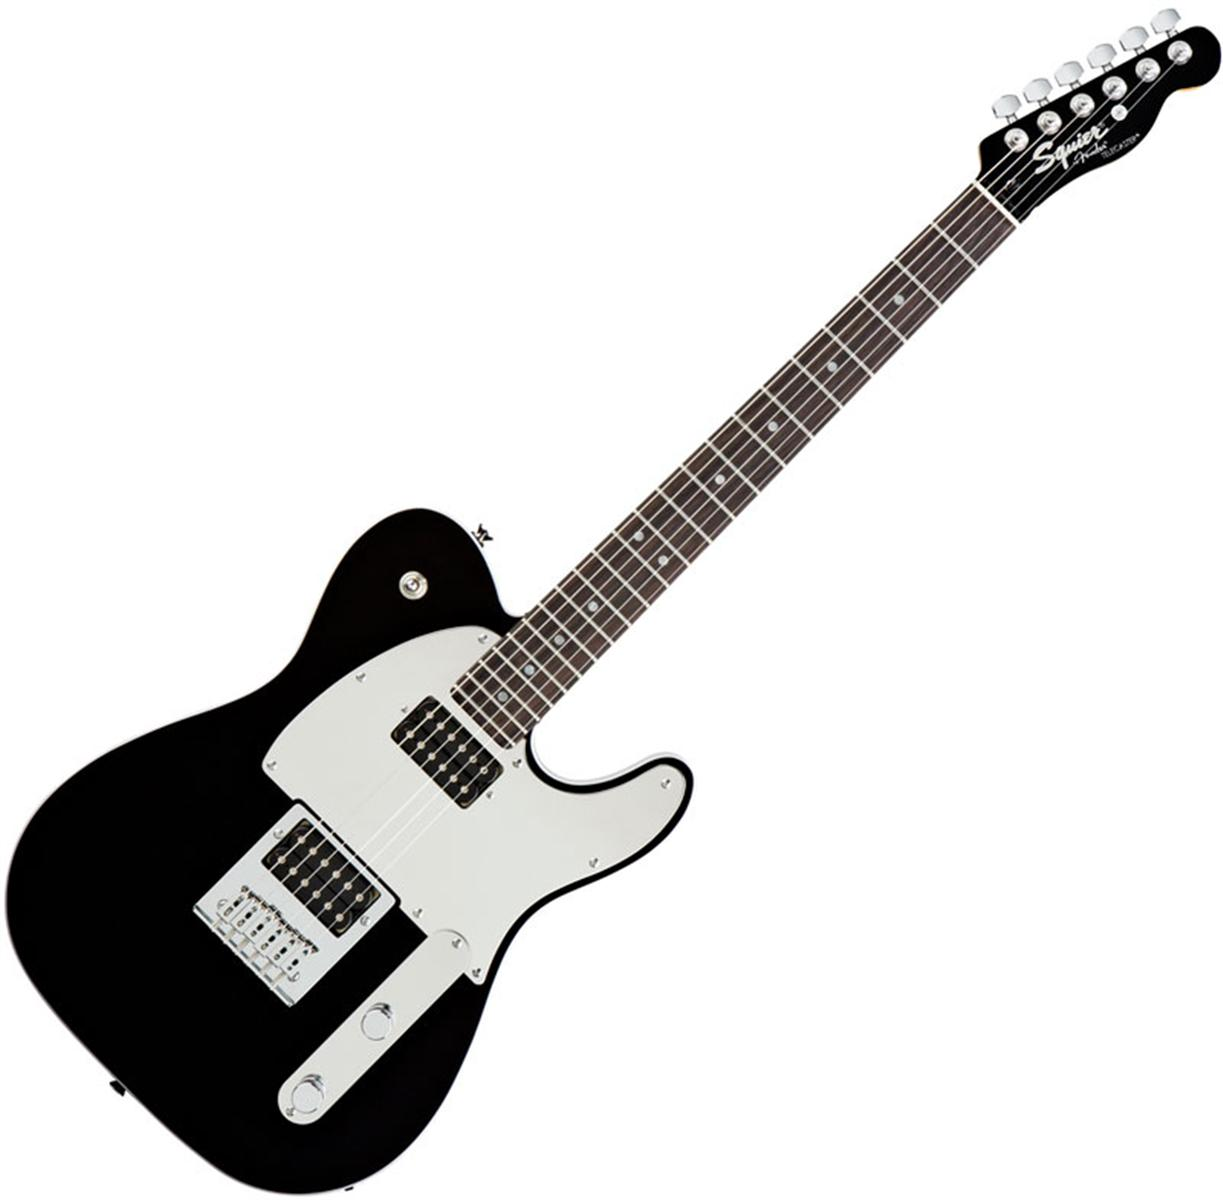 1223x1200 Whit clipart electric guitar